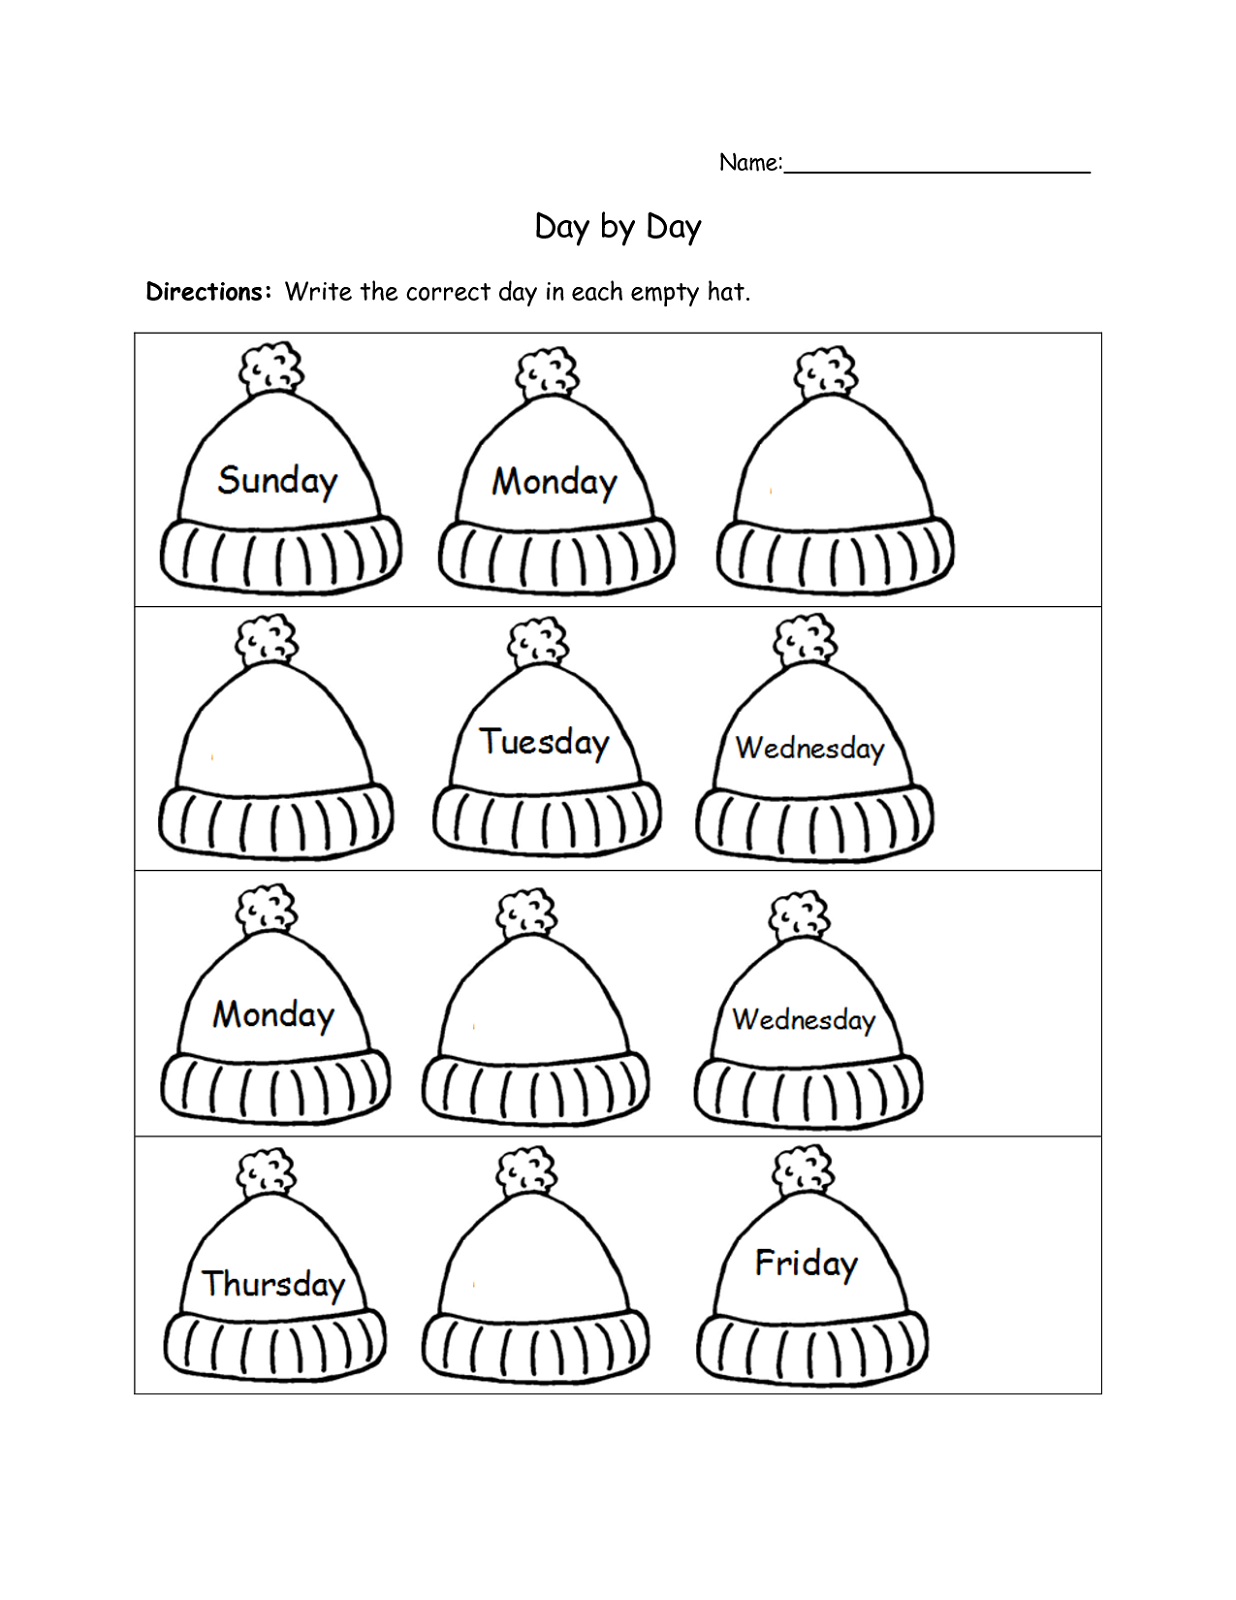 Calendar Practice Worksheets Kindergarten : Free days of the week worksheets activity shelter